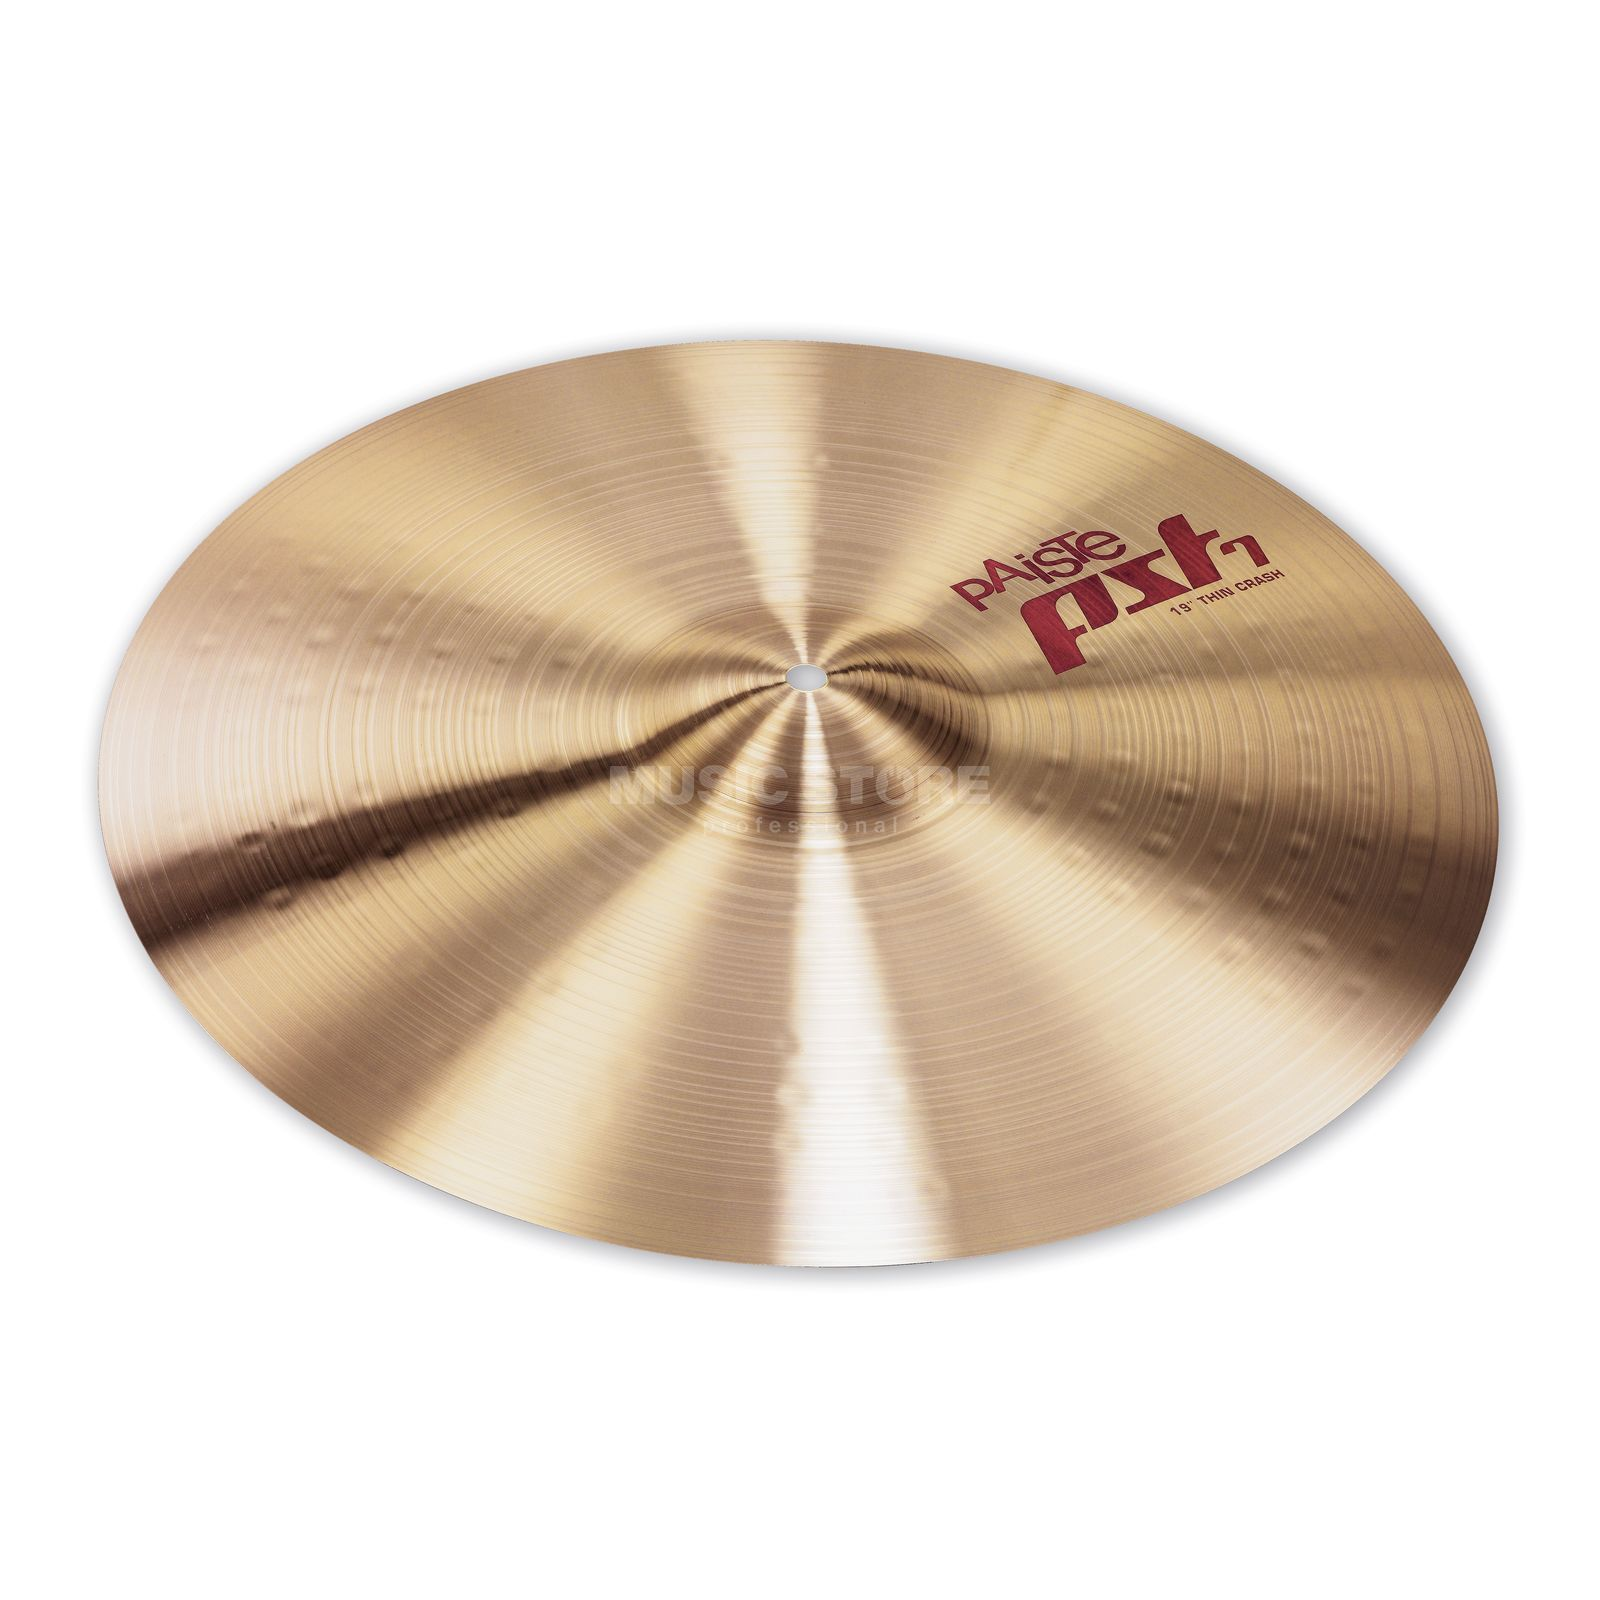 "Paiste PST7 Thin Crash 19"" Produktbillede"